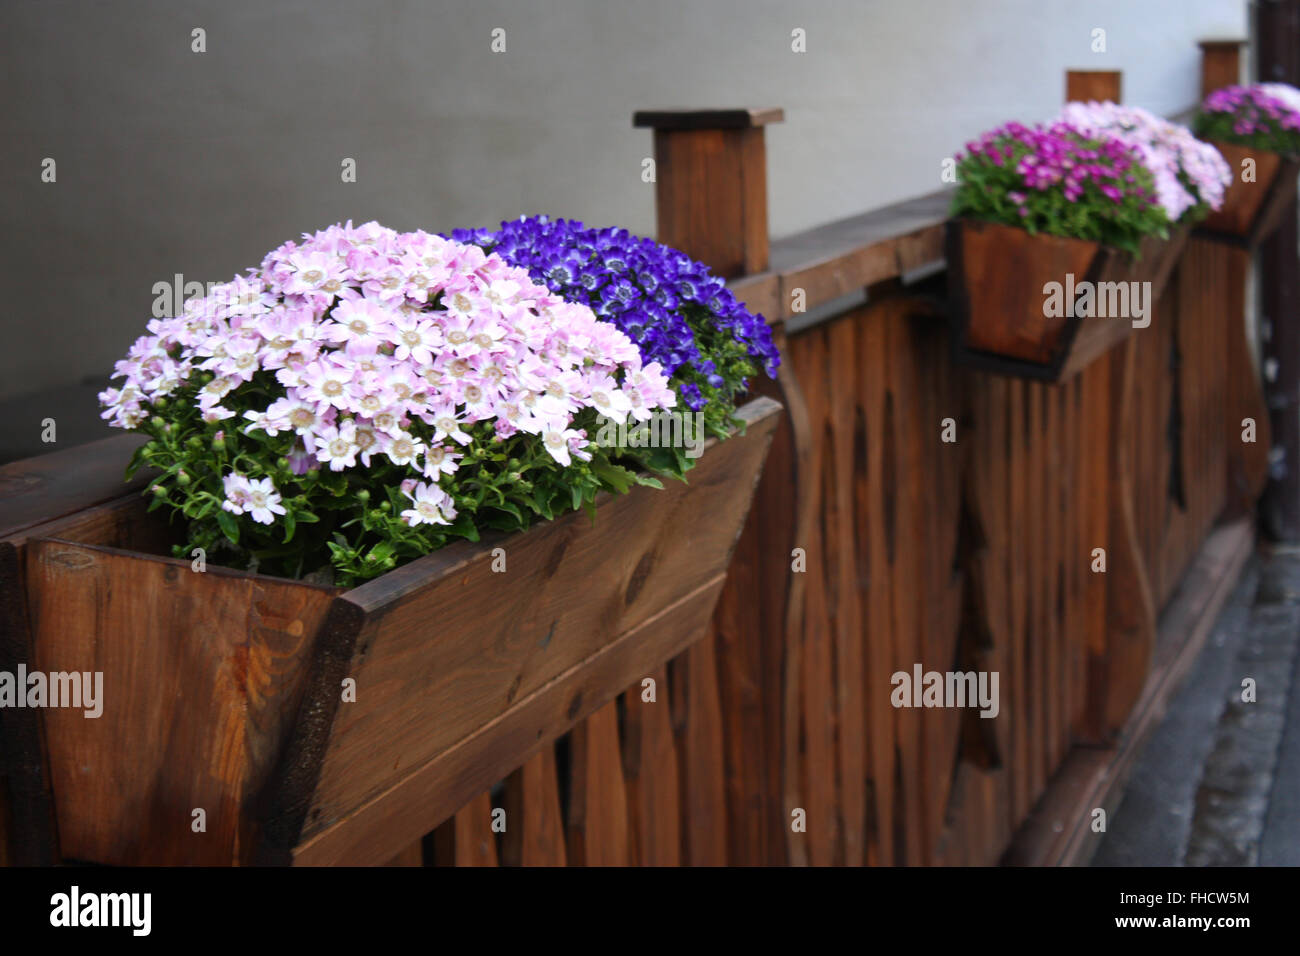 Colourful aster flowers in wooden containers Stock Photo